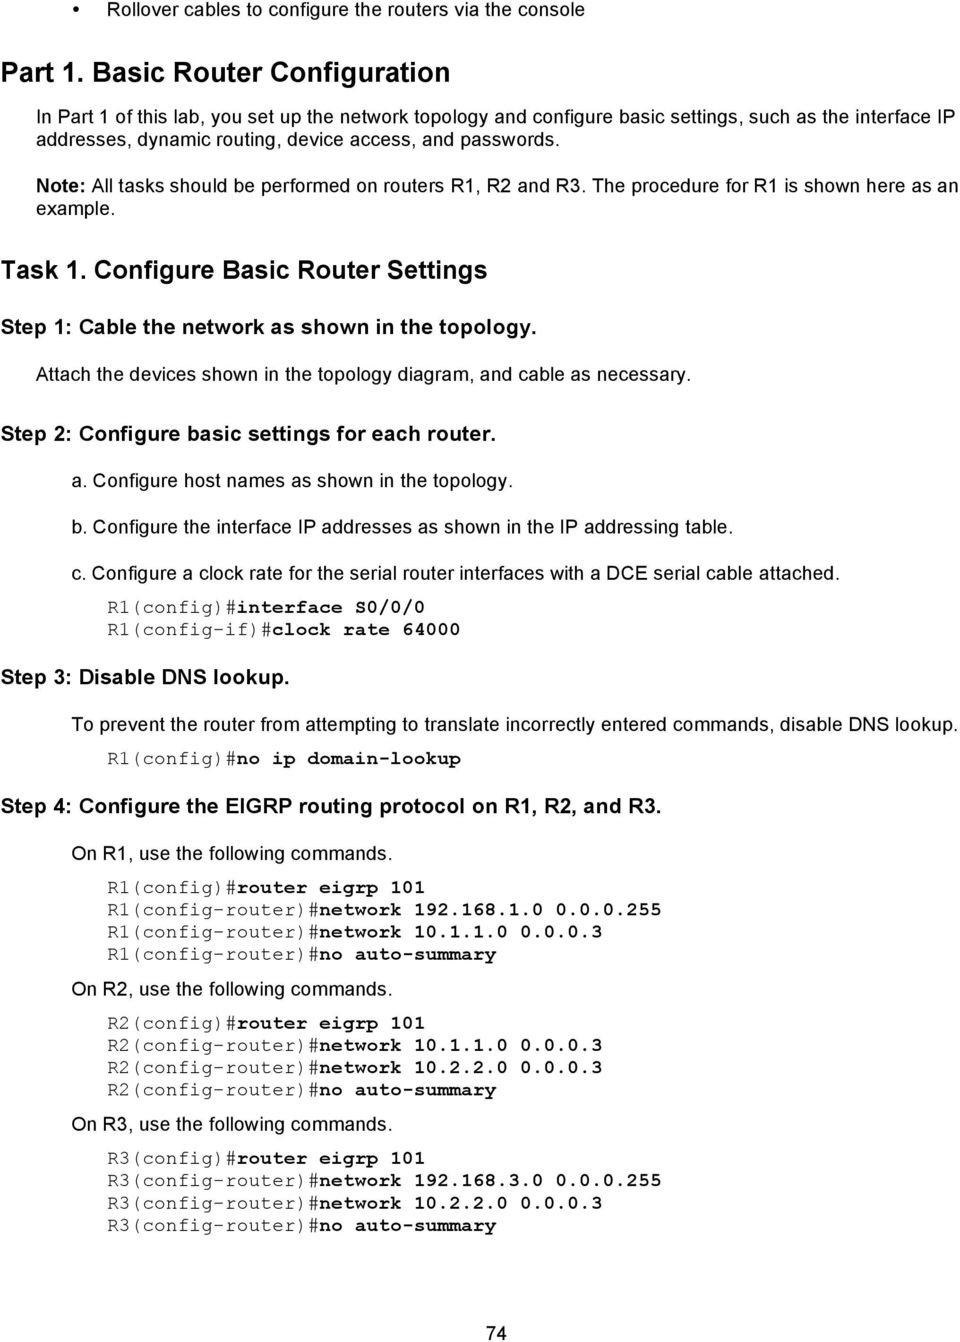 Chapter 4 Lab A Configuring Cbac And Zone Based Firewalls Pdf Rollover Cable Diagram Console For Note All Tasks Should Be Performed On Routers R1 R2 R3 The